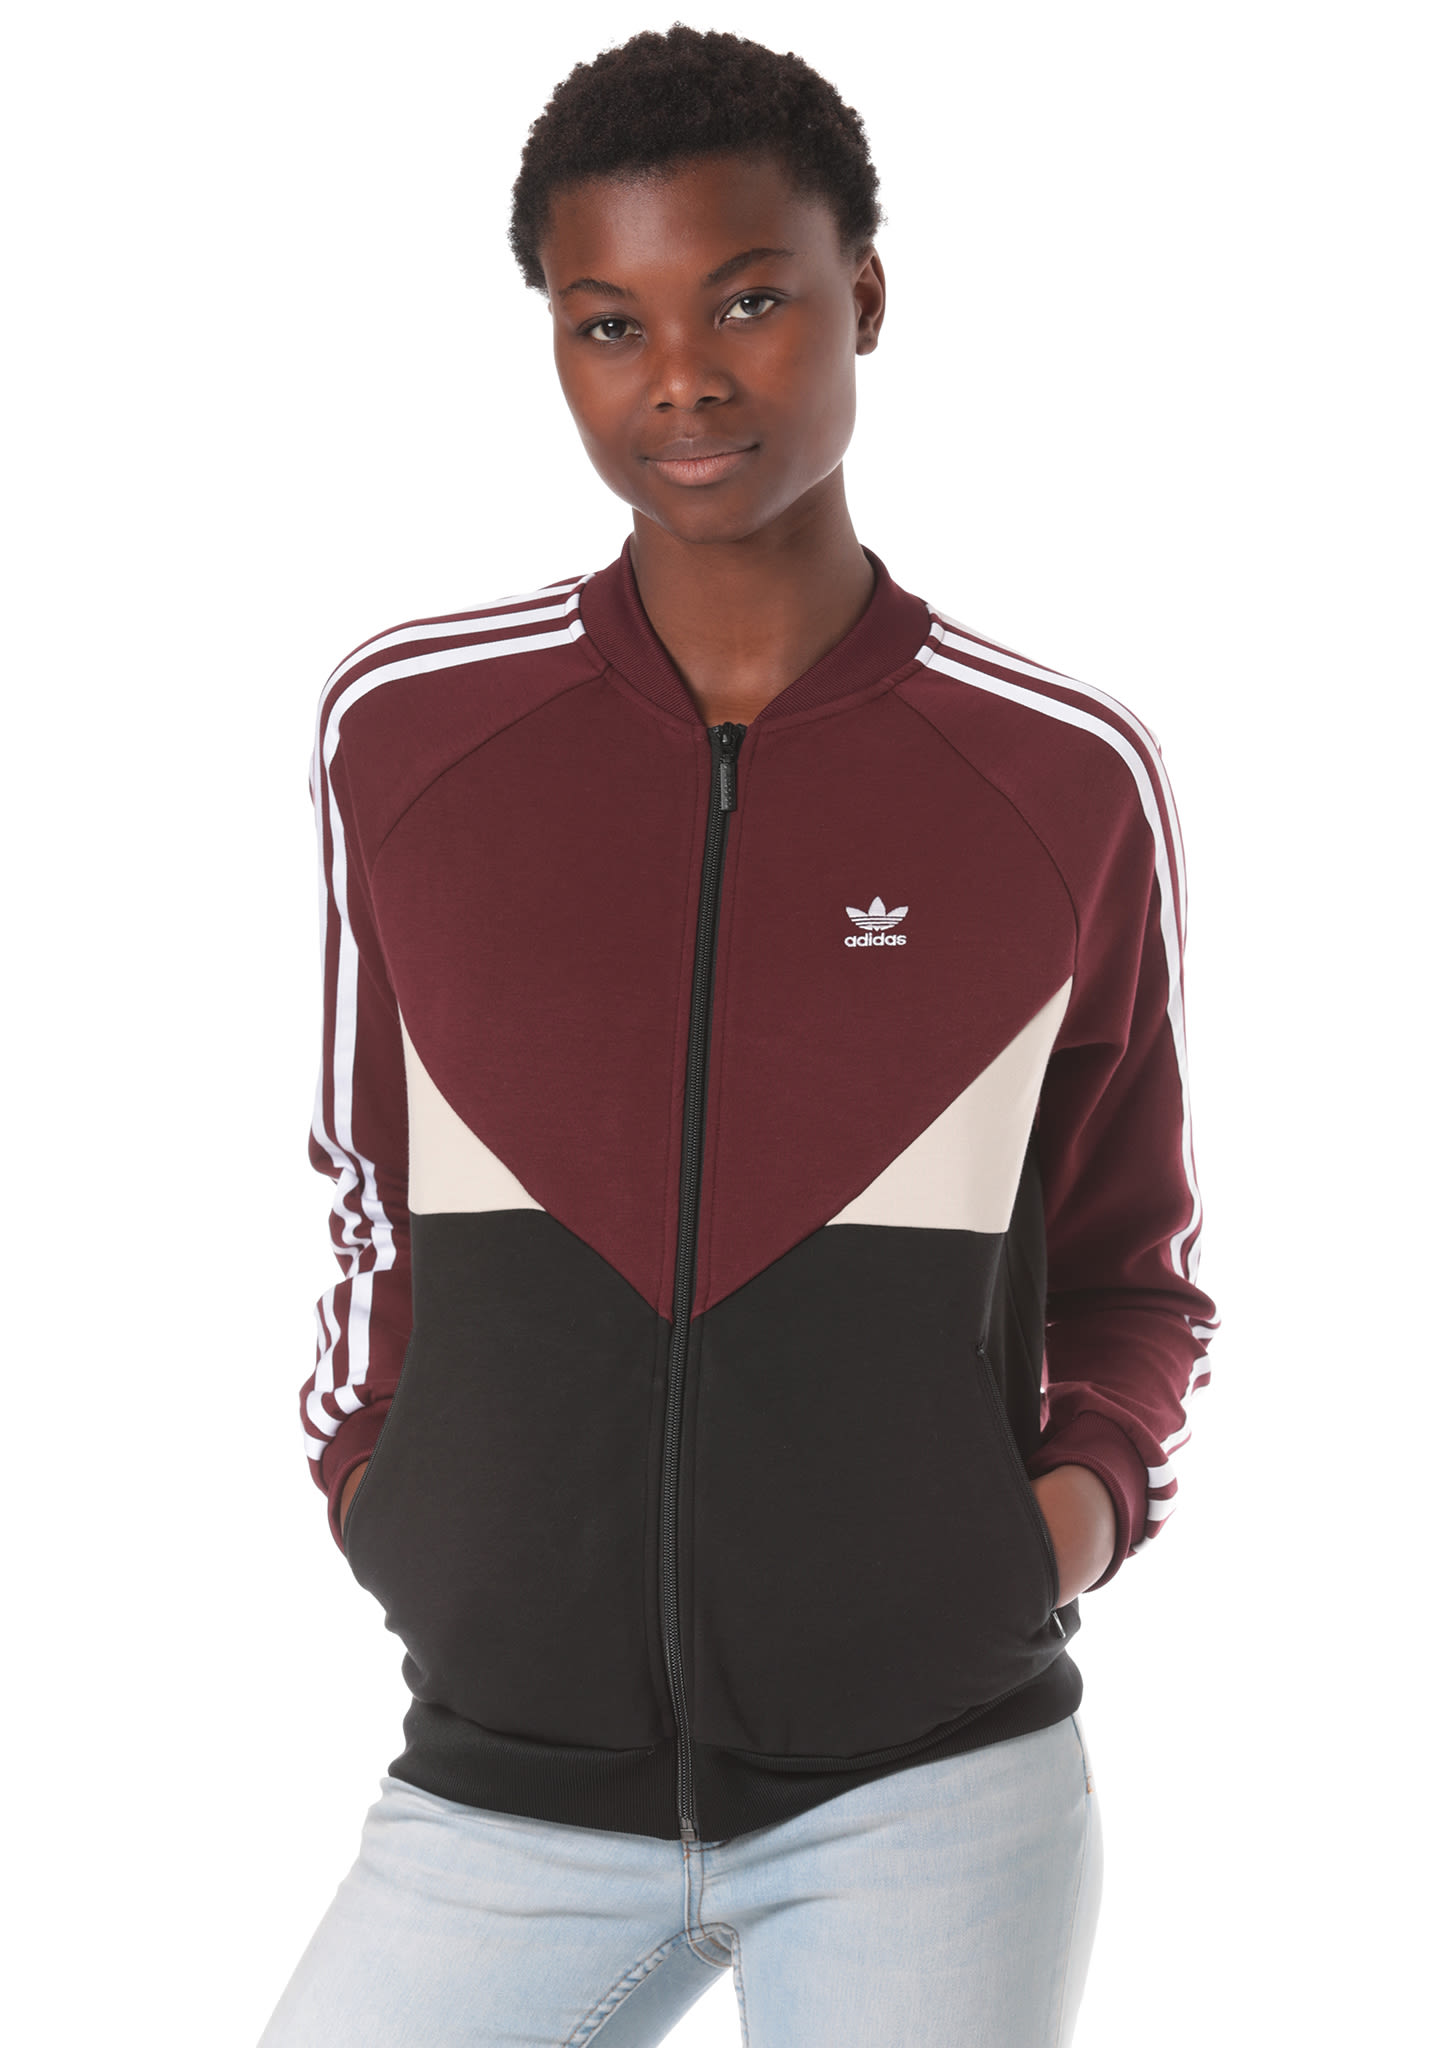 ADIDAS ORIGINALS Colorado SST - Track Top for Women - Red - Planet Sports 7f63aacfe